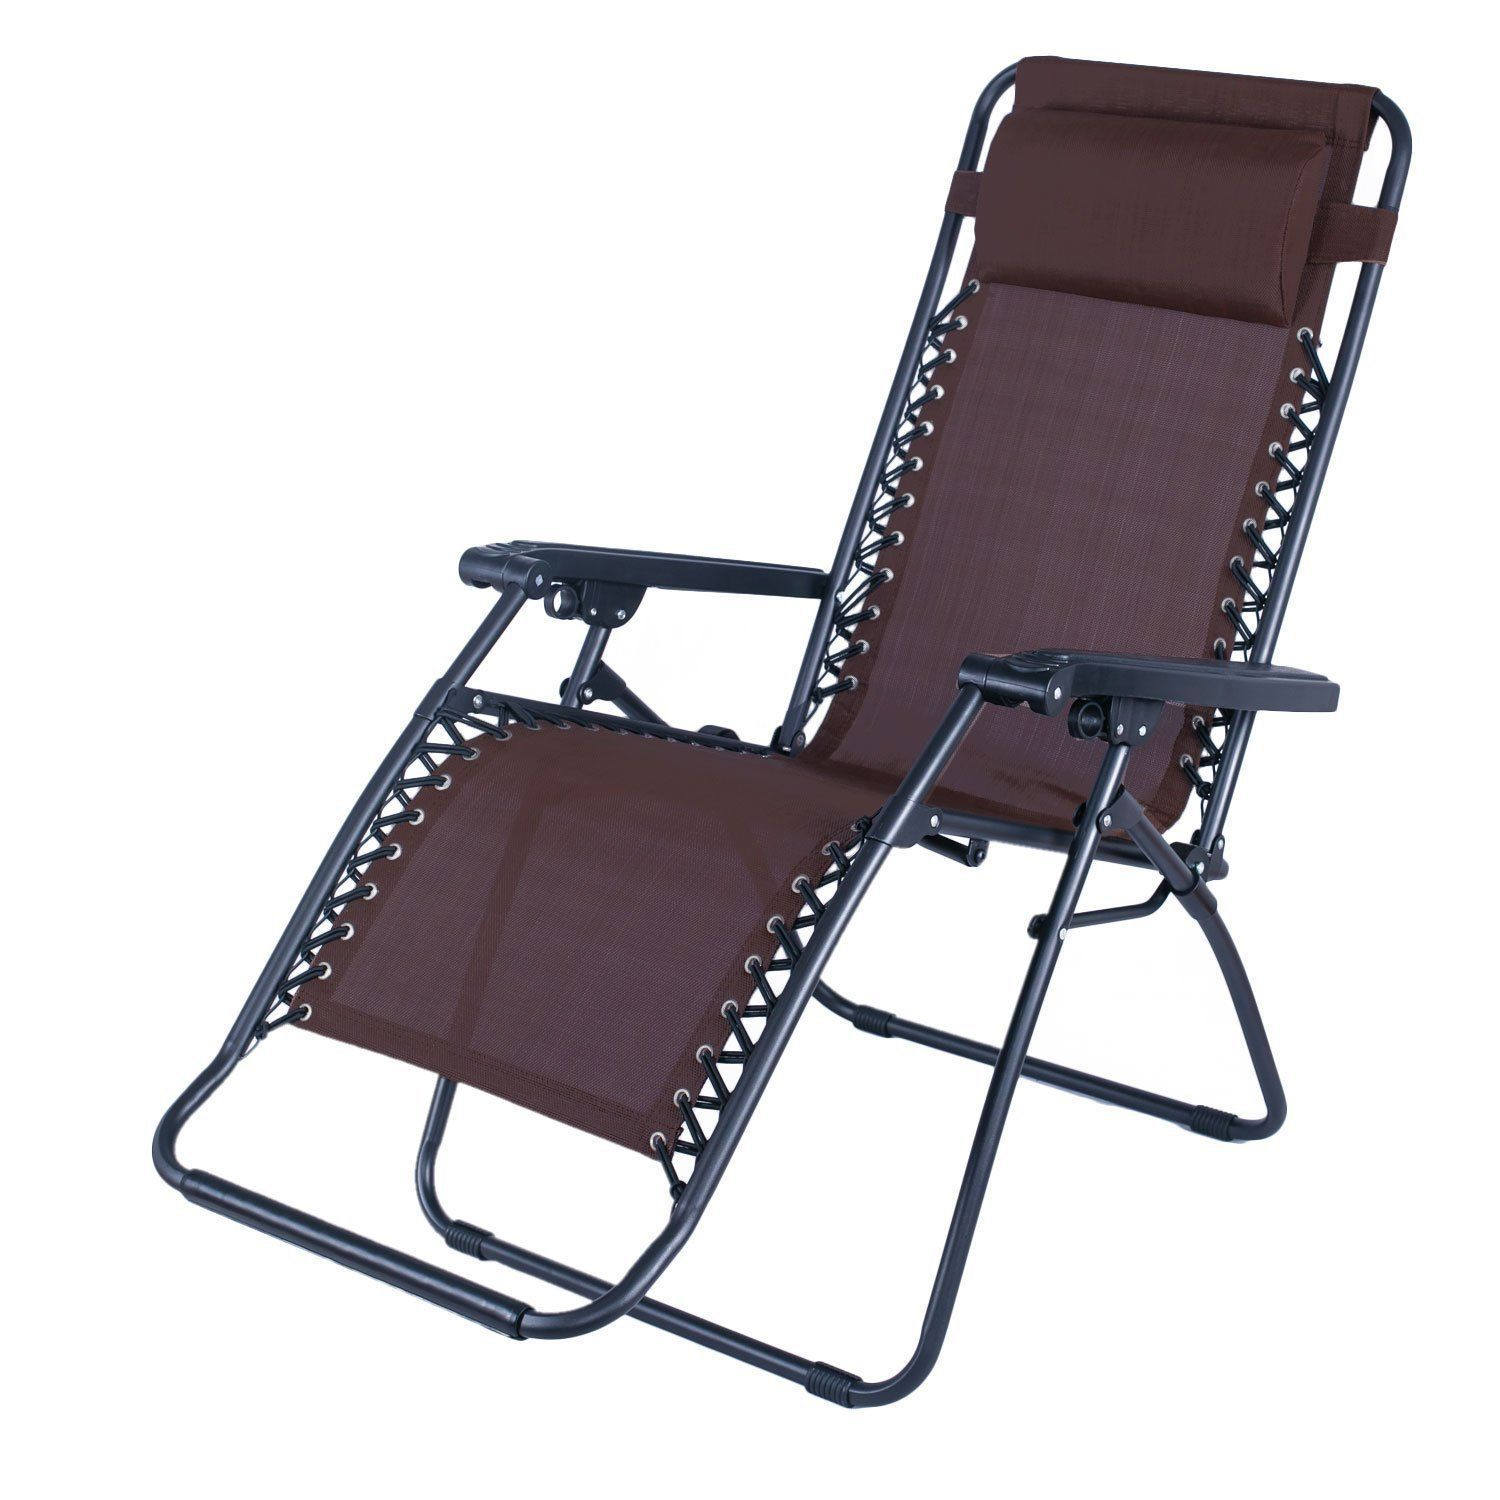 Adeco Portable Recliner Chair with adjustable headrest